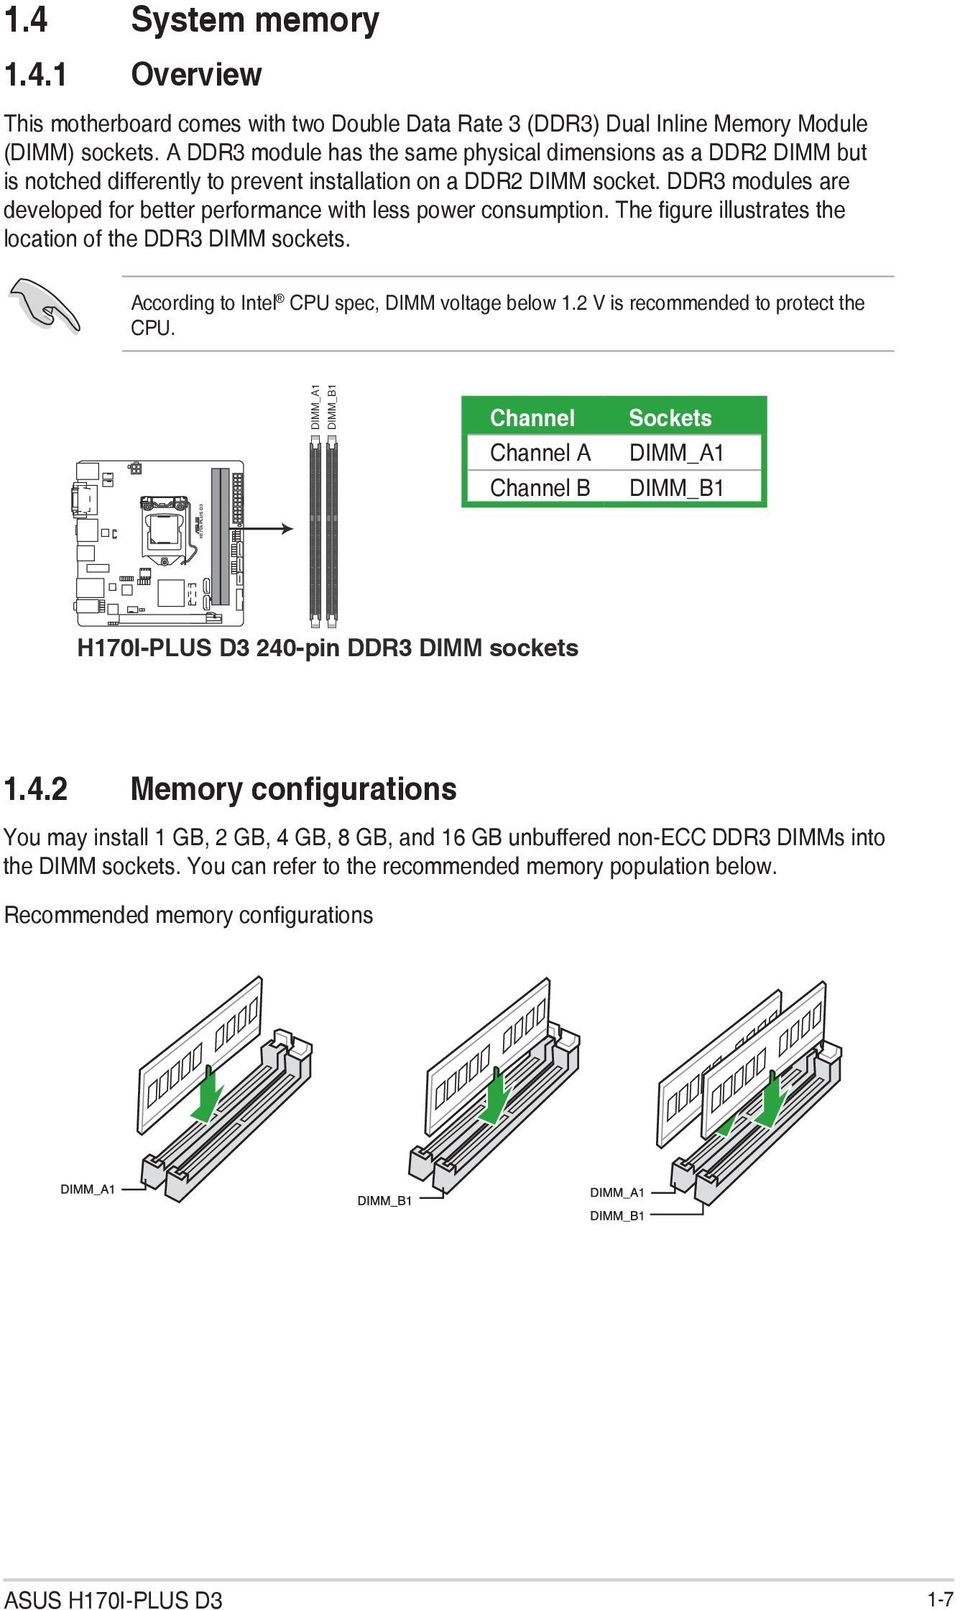 H170i Plus D3 Motherboard Pdf Compaq Hp Oem P4sd Front Panel Wiring Diagram Ddr3 Modules Are Developed For Better Performance With Less Power Consumption The Figure Illustrates